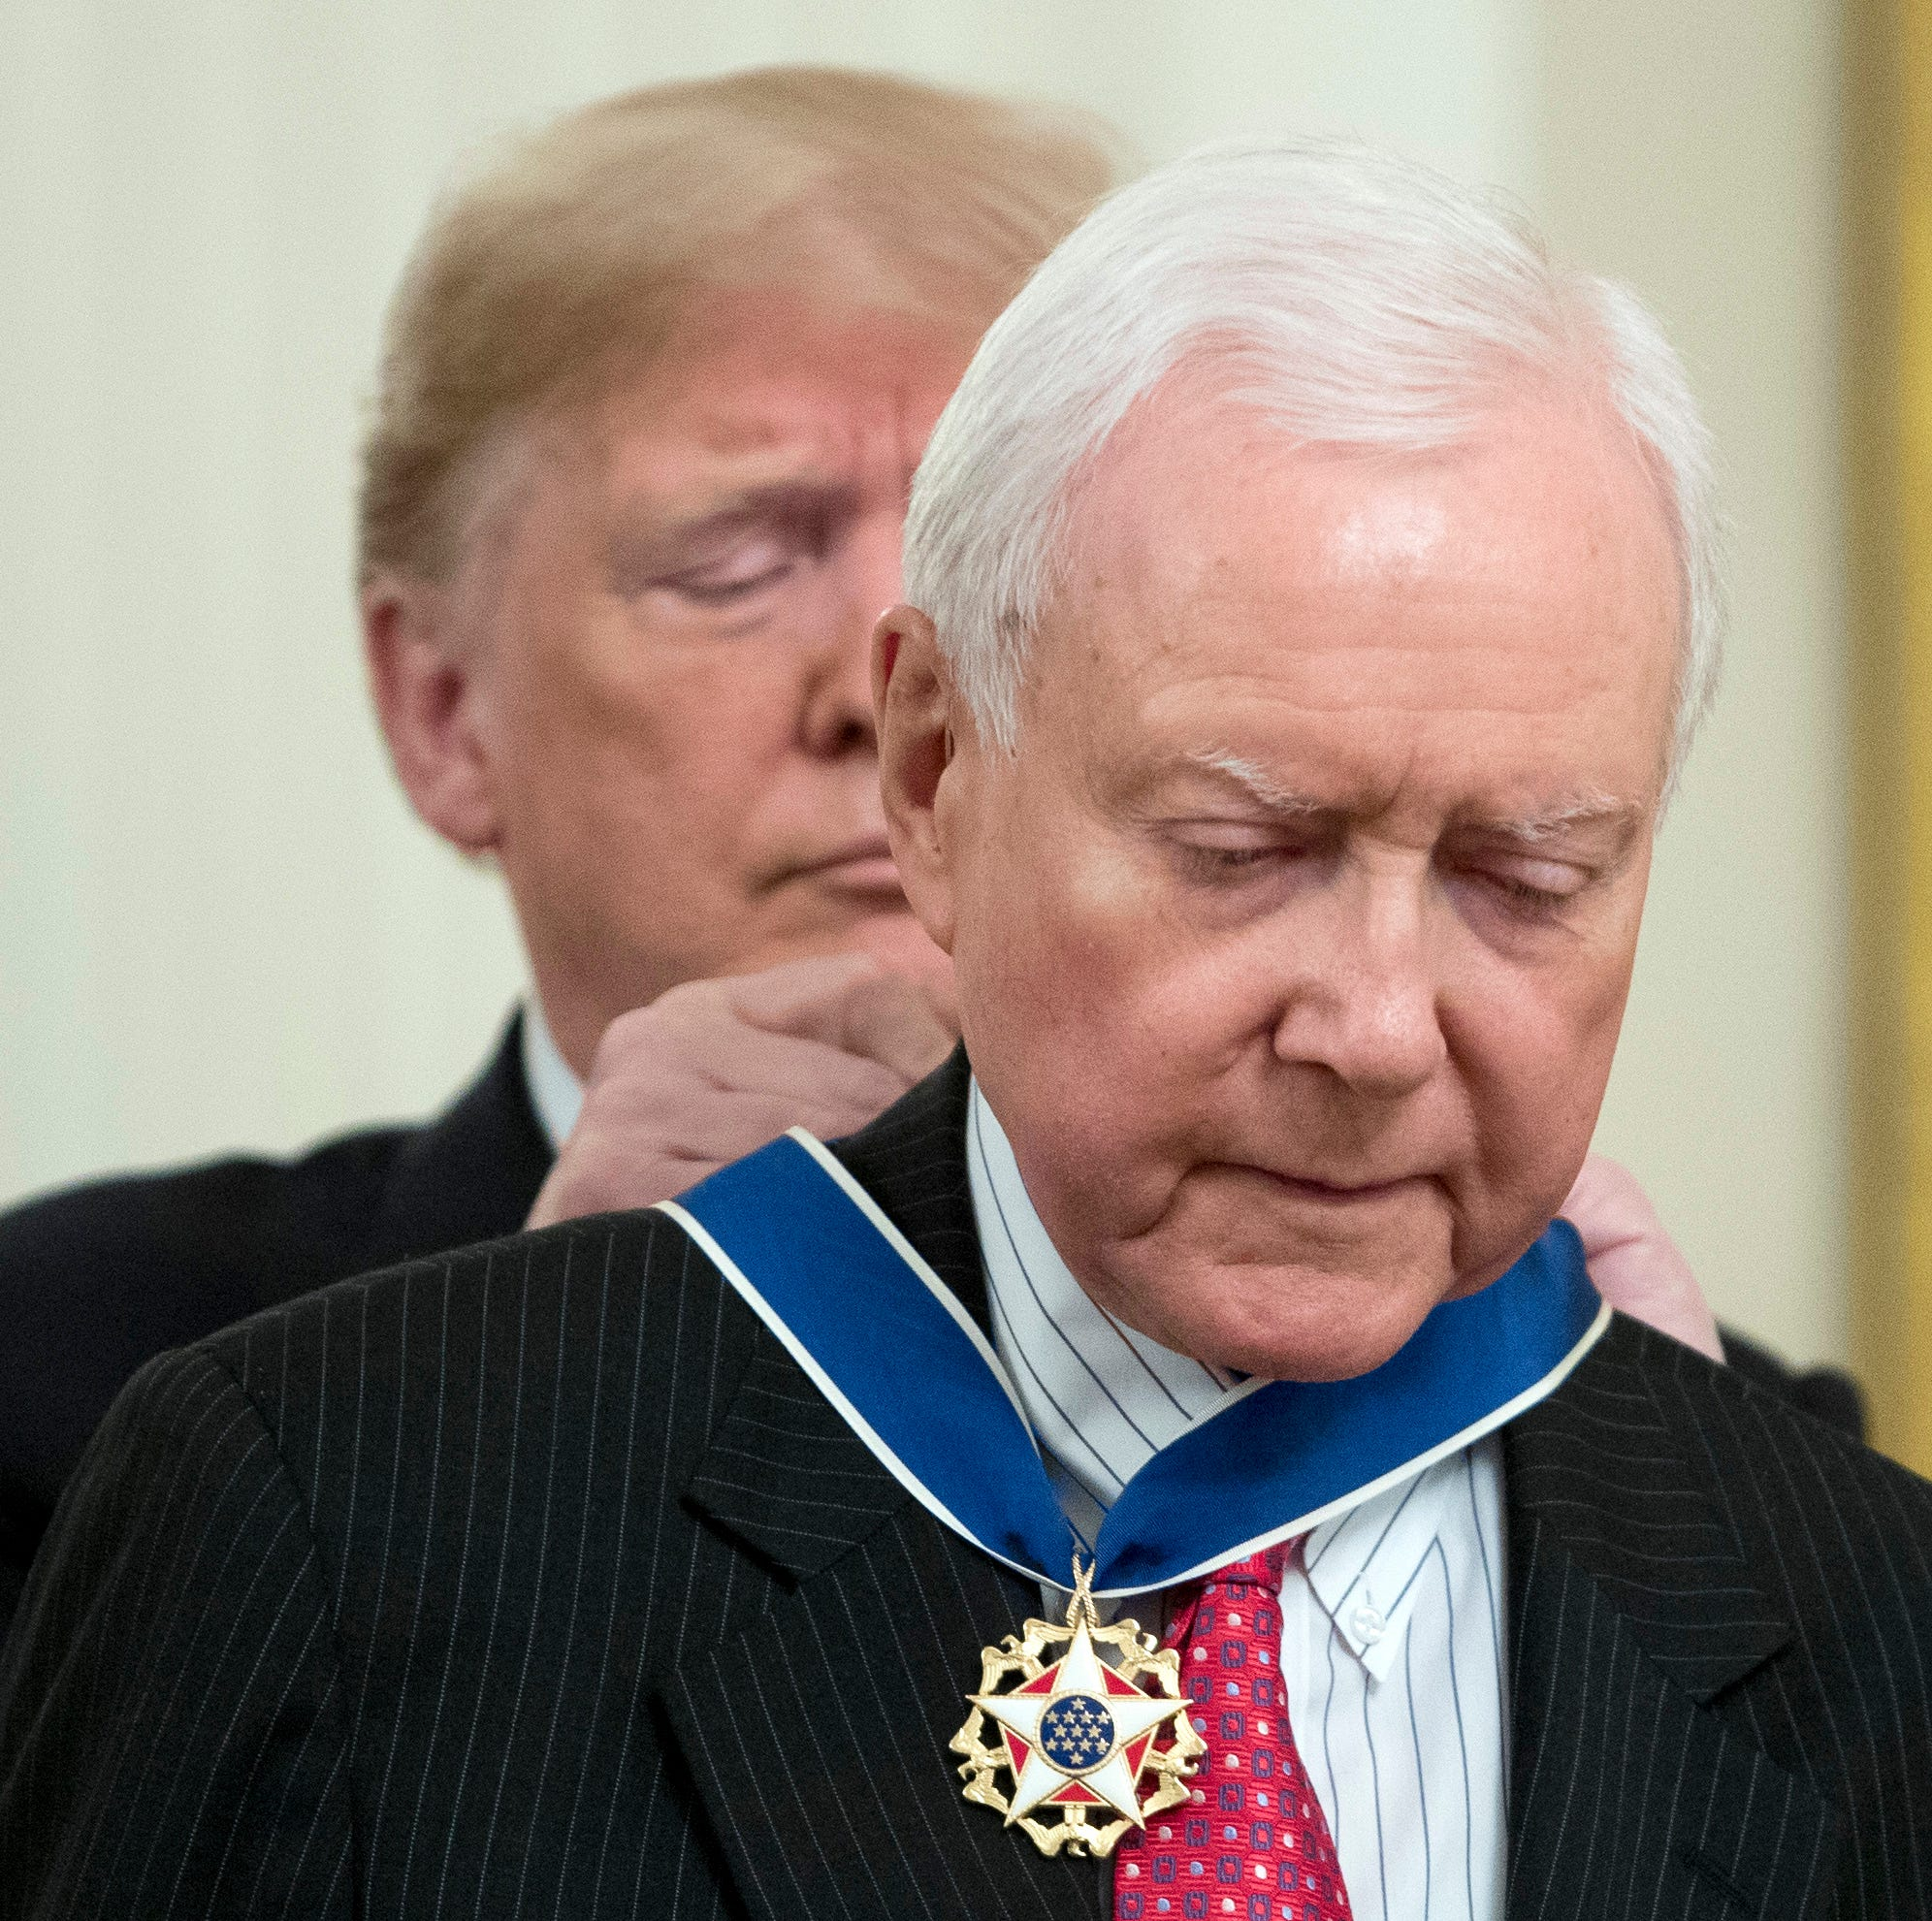 Elvis, Orrin Hatch, Miriam Adelson among Presidential Medal of Freedom recipients